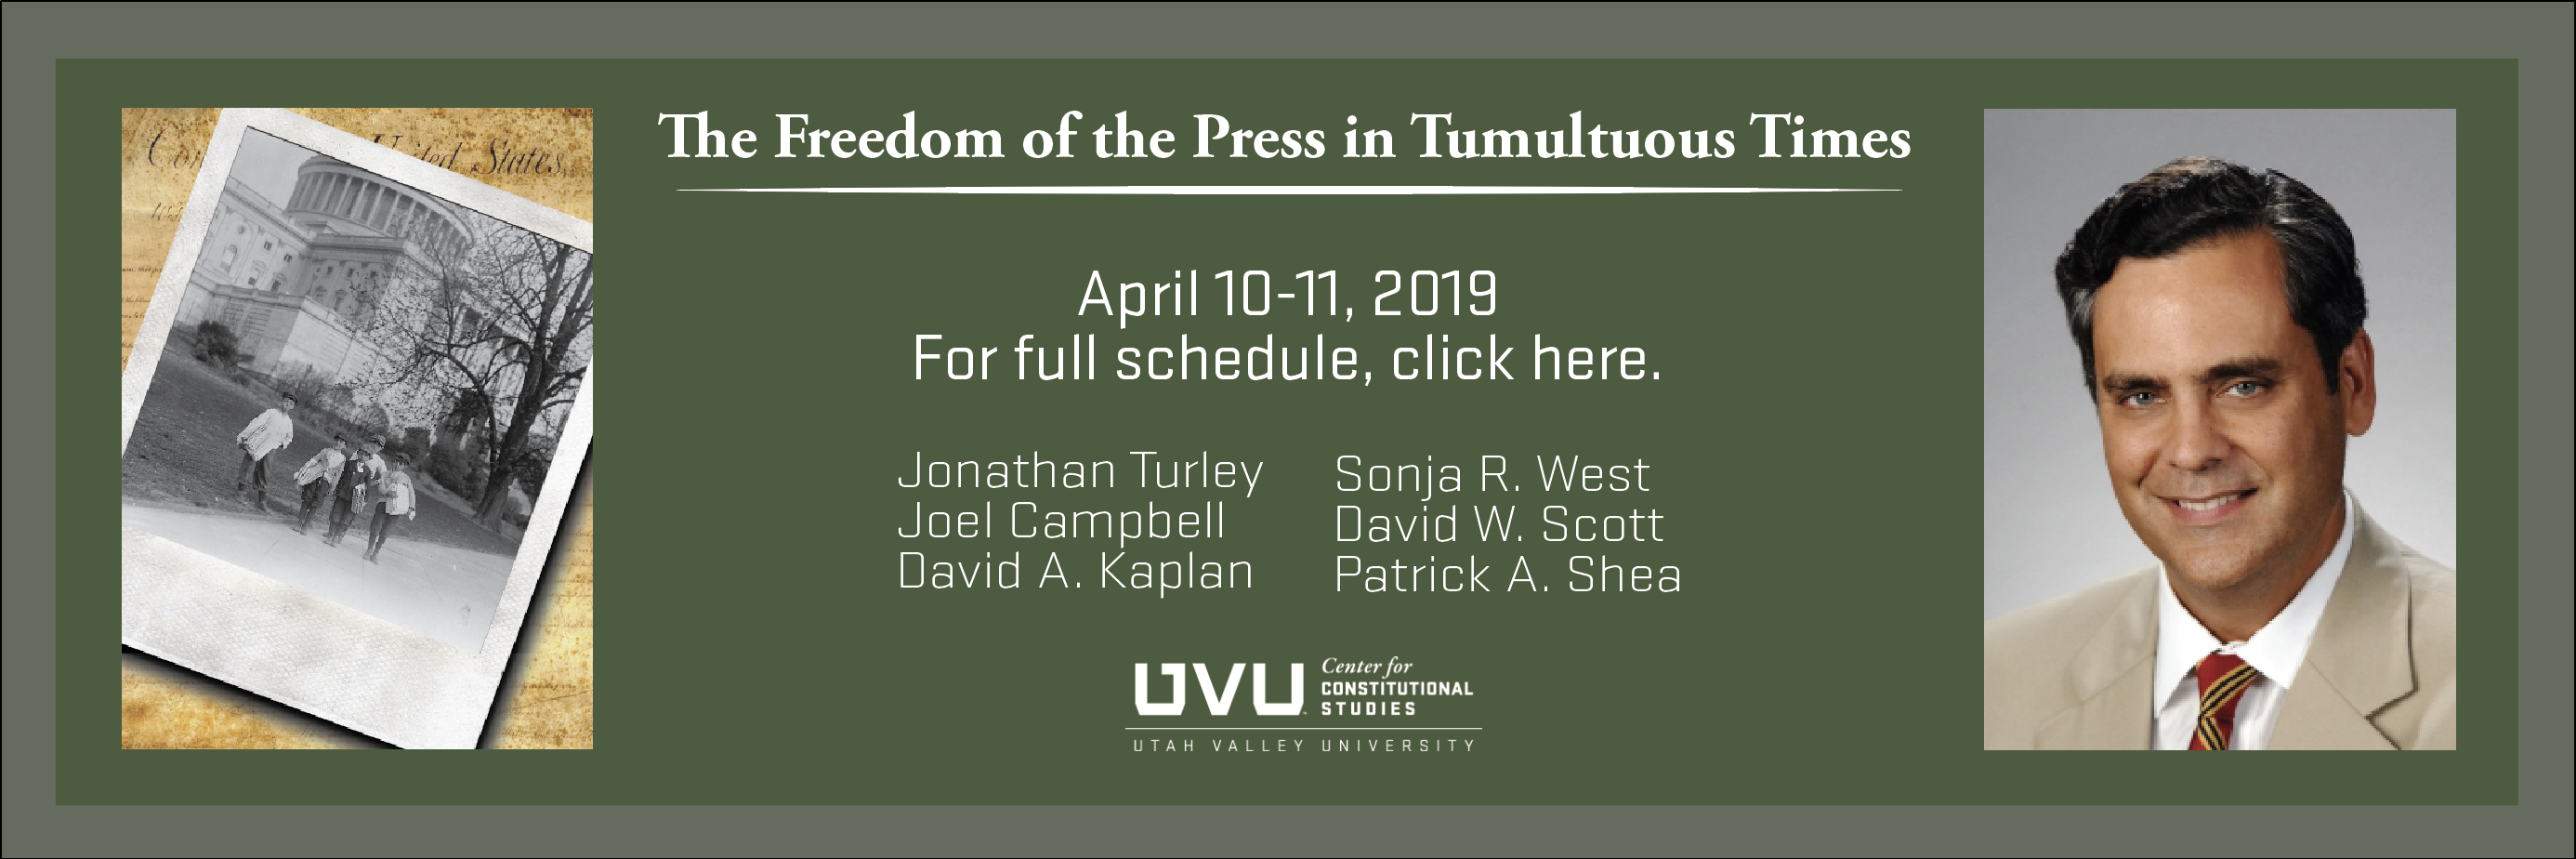 The Freedom of the Press in Tumultuous Times